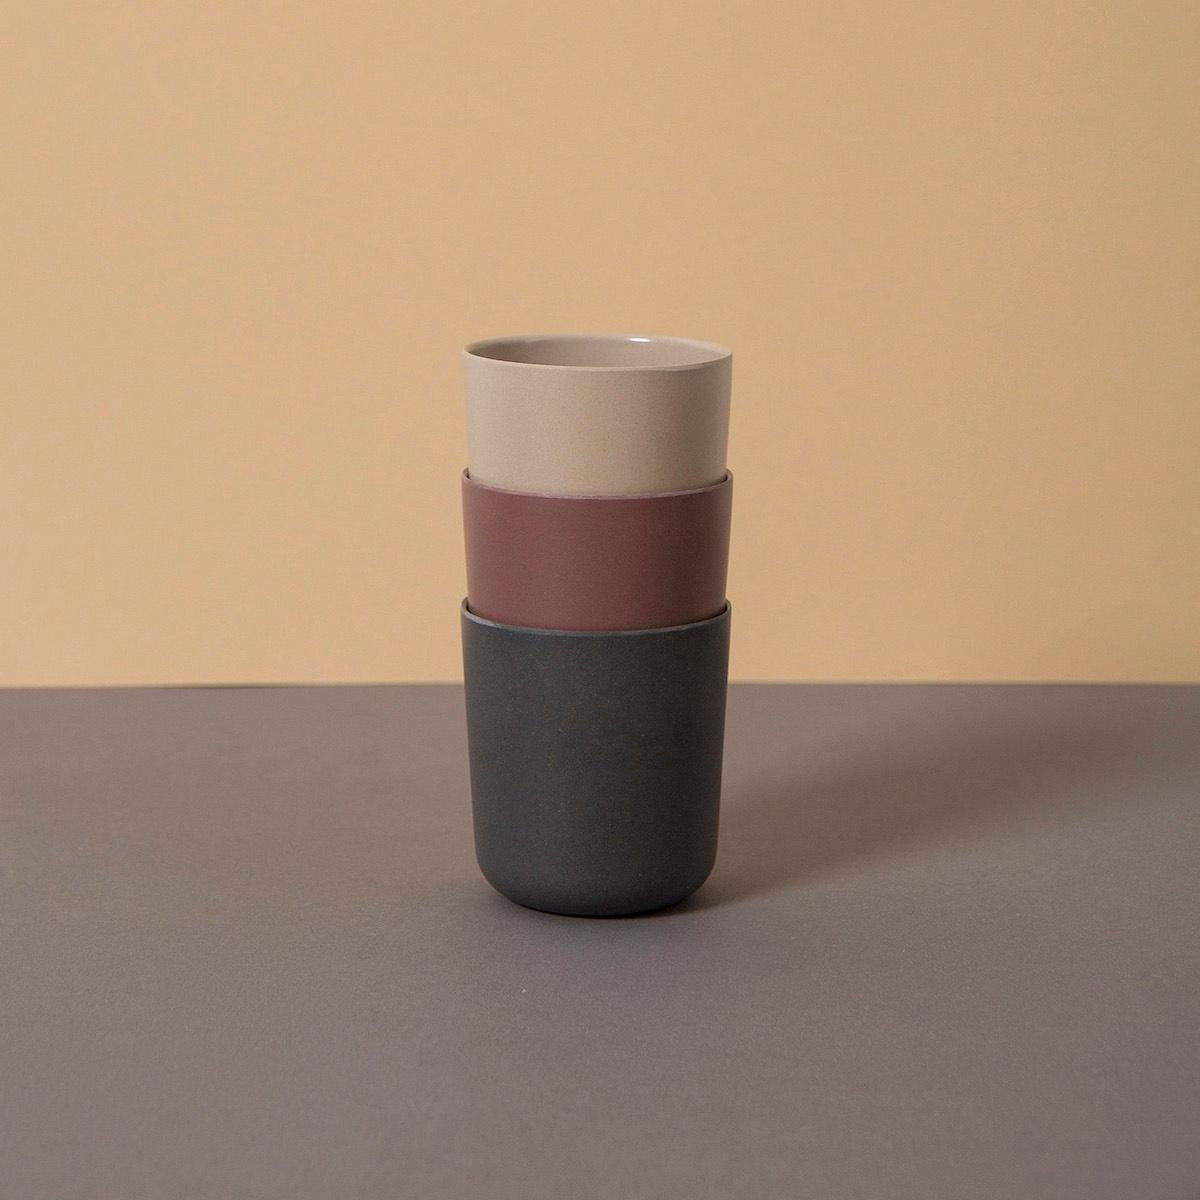 Bamboo set of Cups, Fog|Beet|Ocean